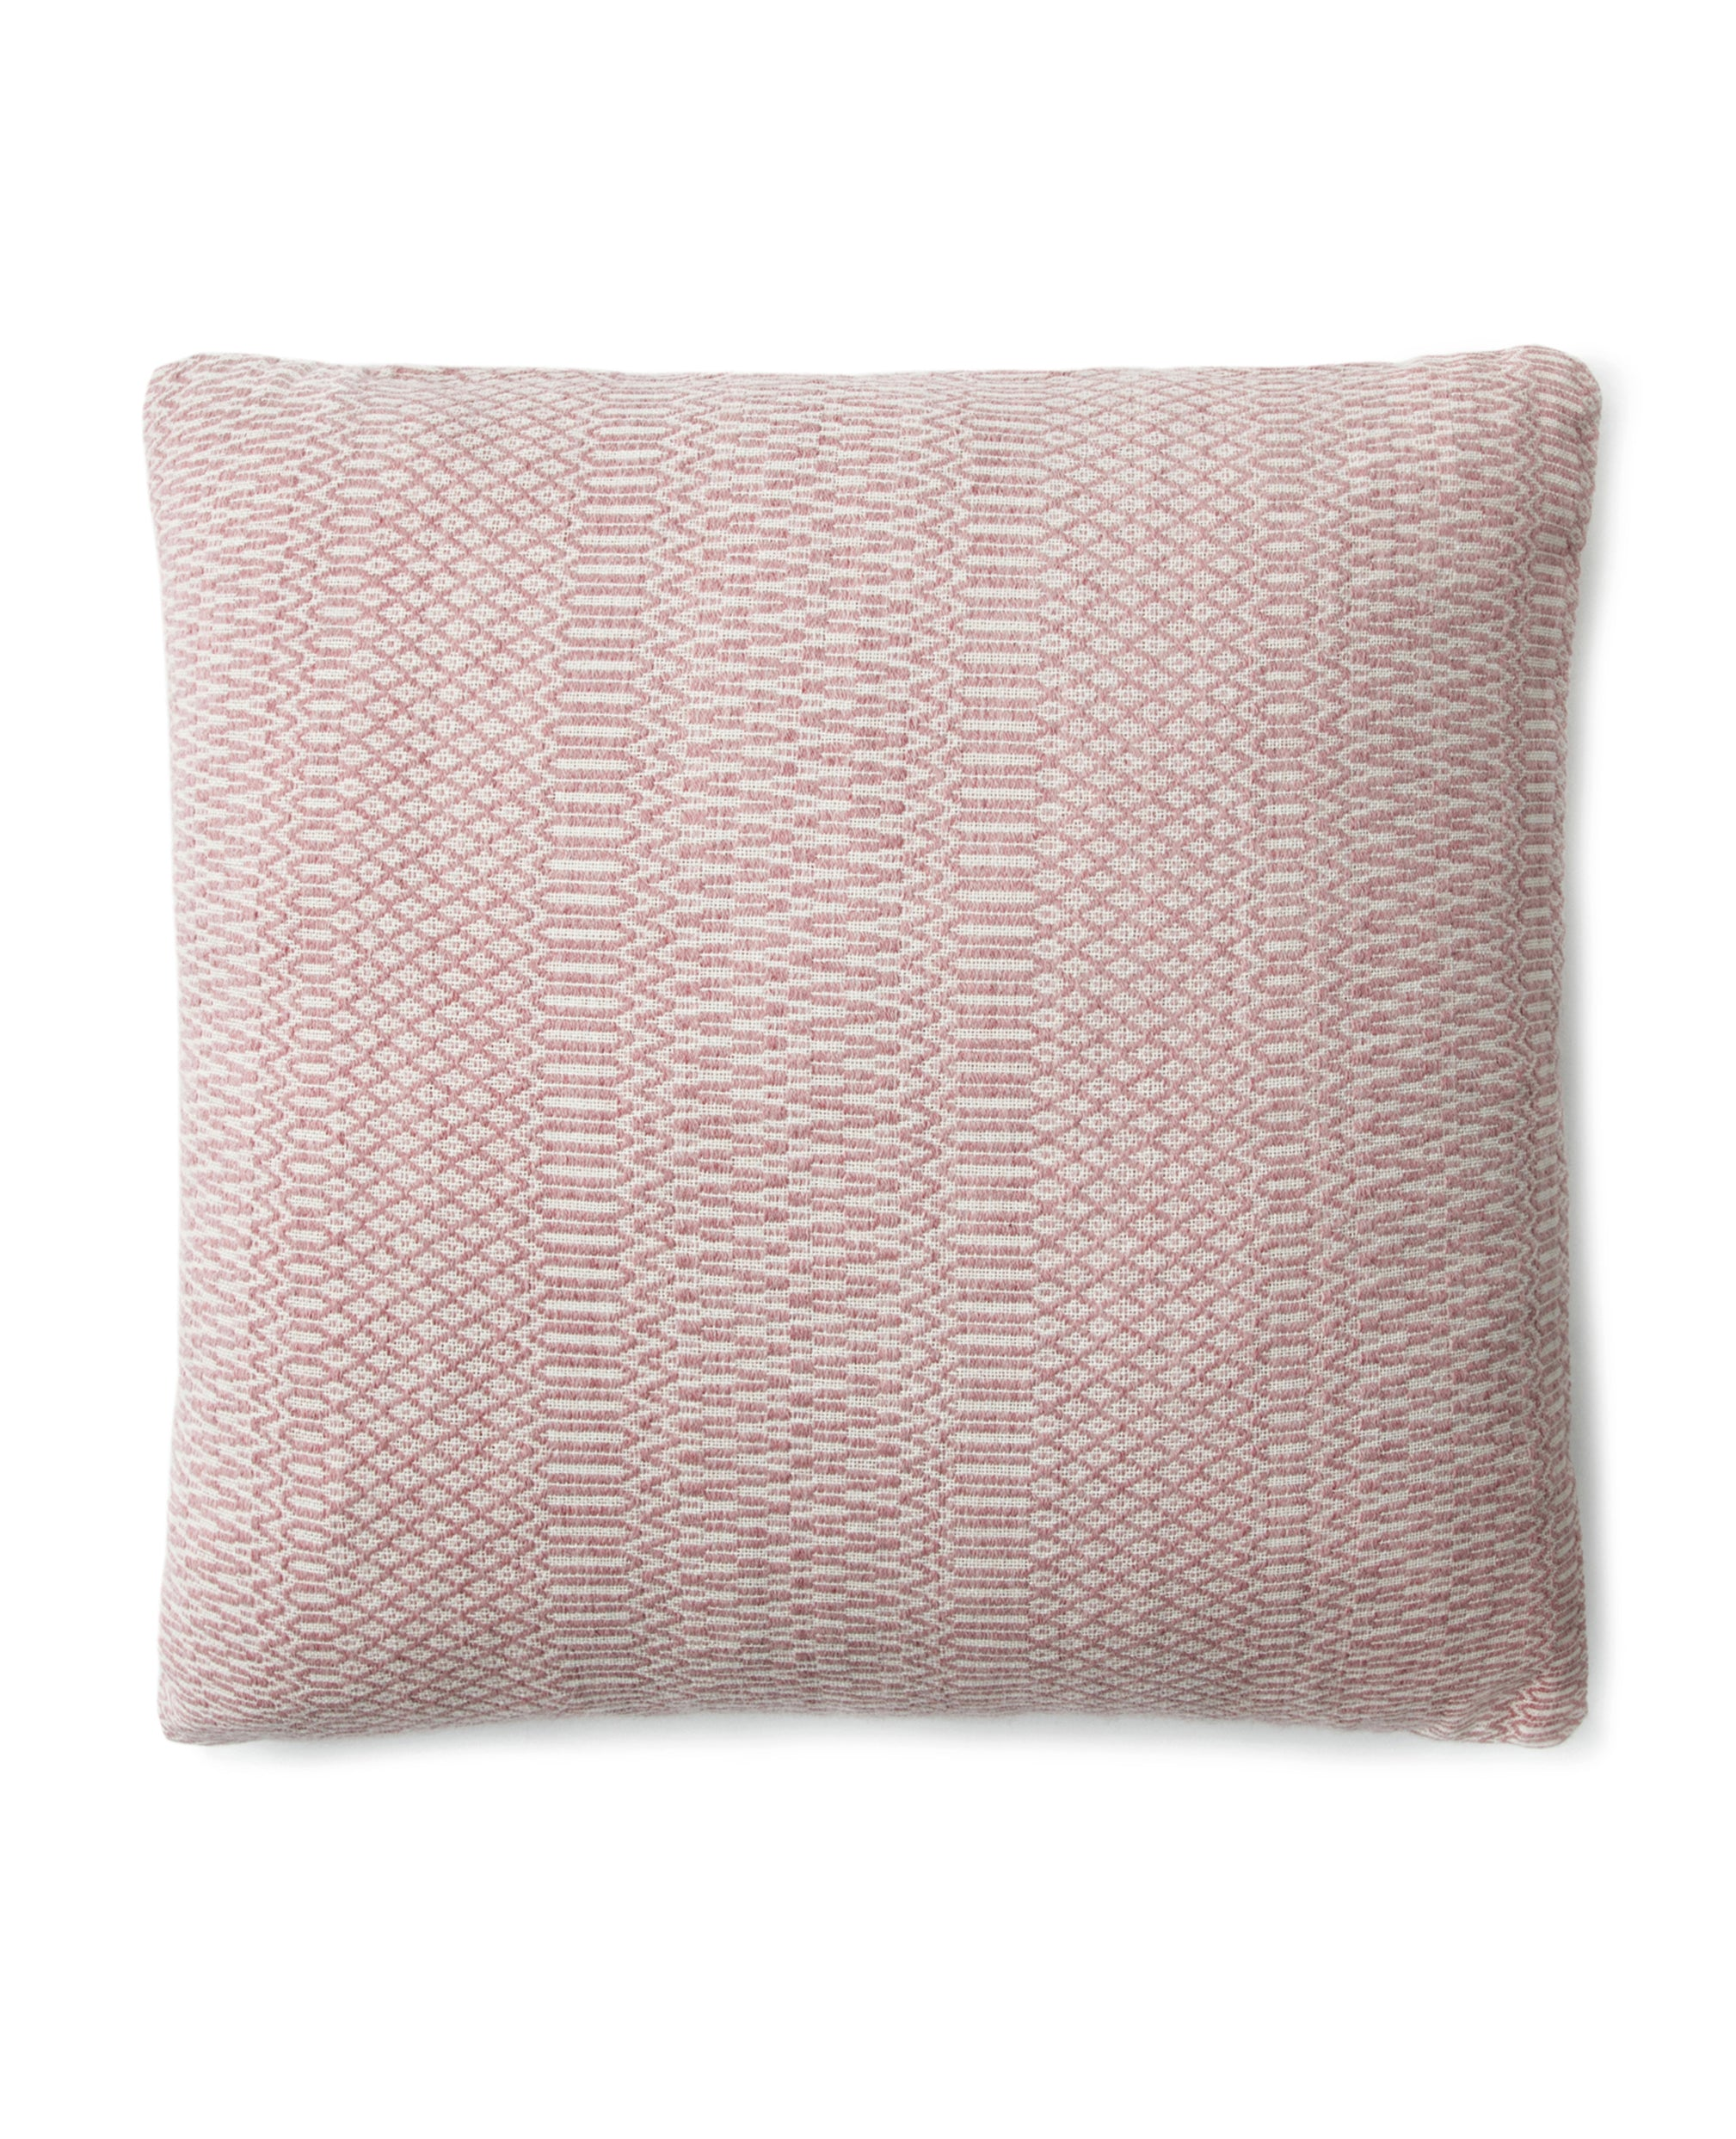 Siana overshot cushion full